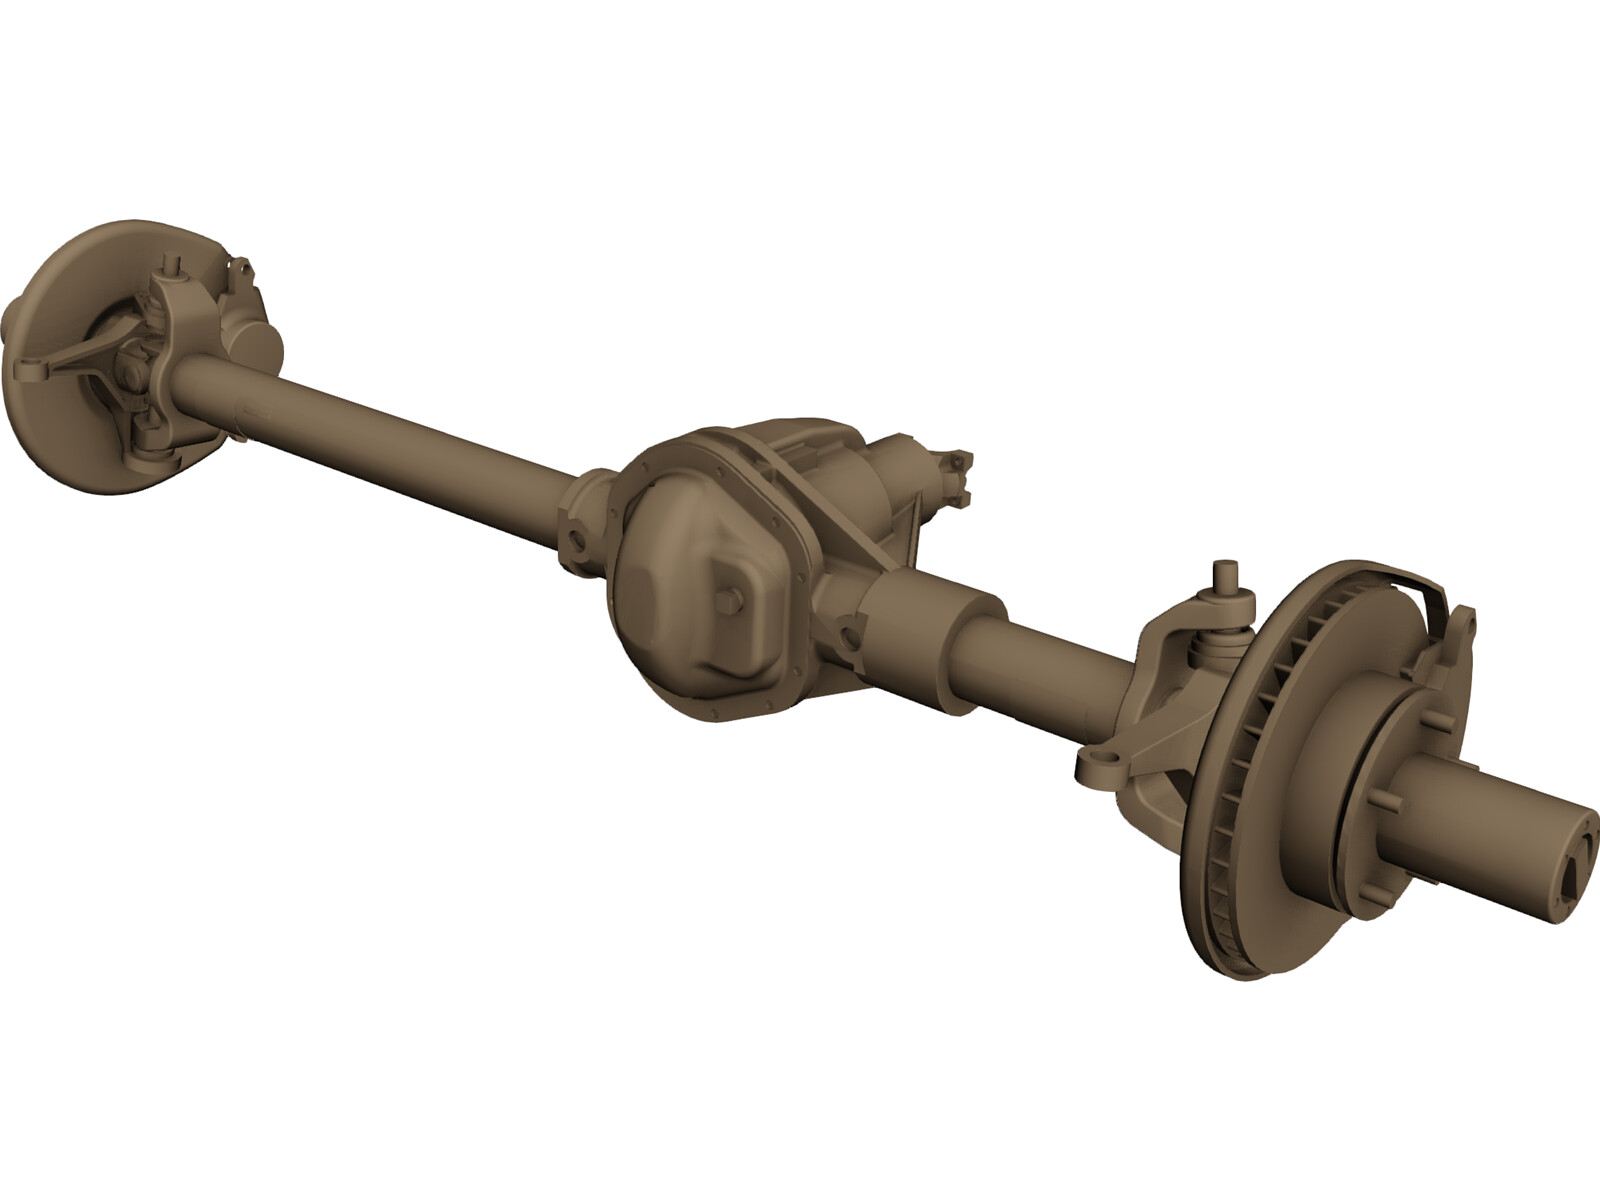 Ford High Pinion Dana 44 Front Axle 3D CAD Model - 3D CAD